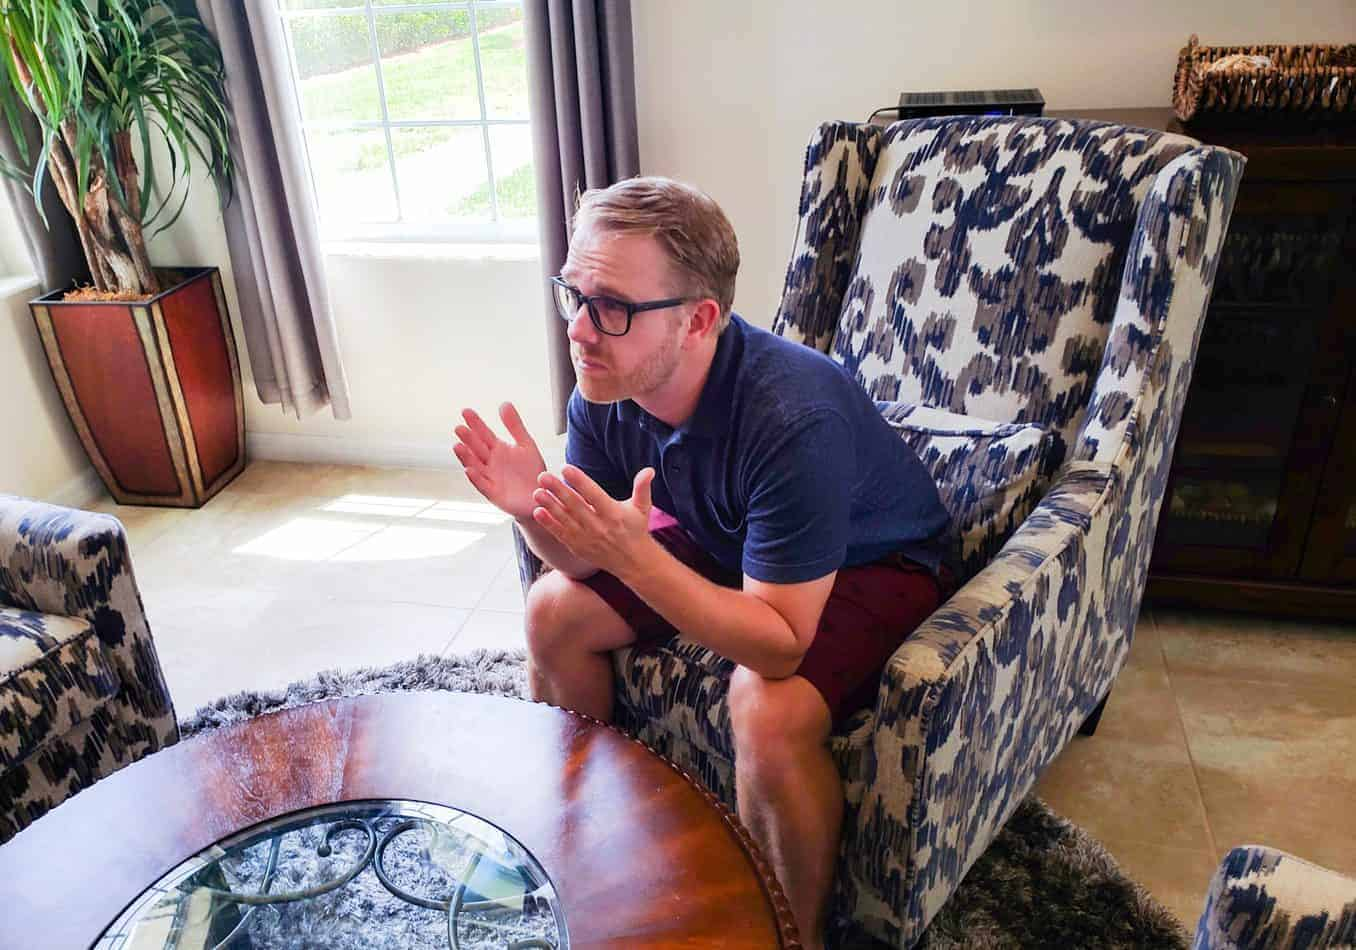 Blond man with glasses sitting in an armchair raising his hands with his elbows resting on his knees.